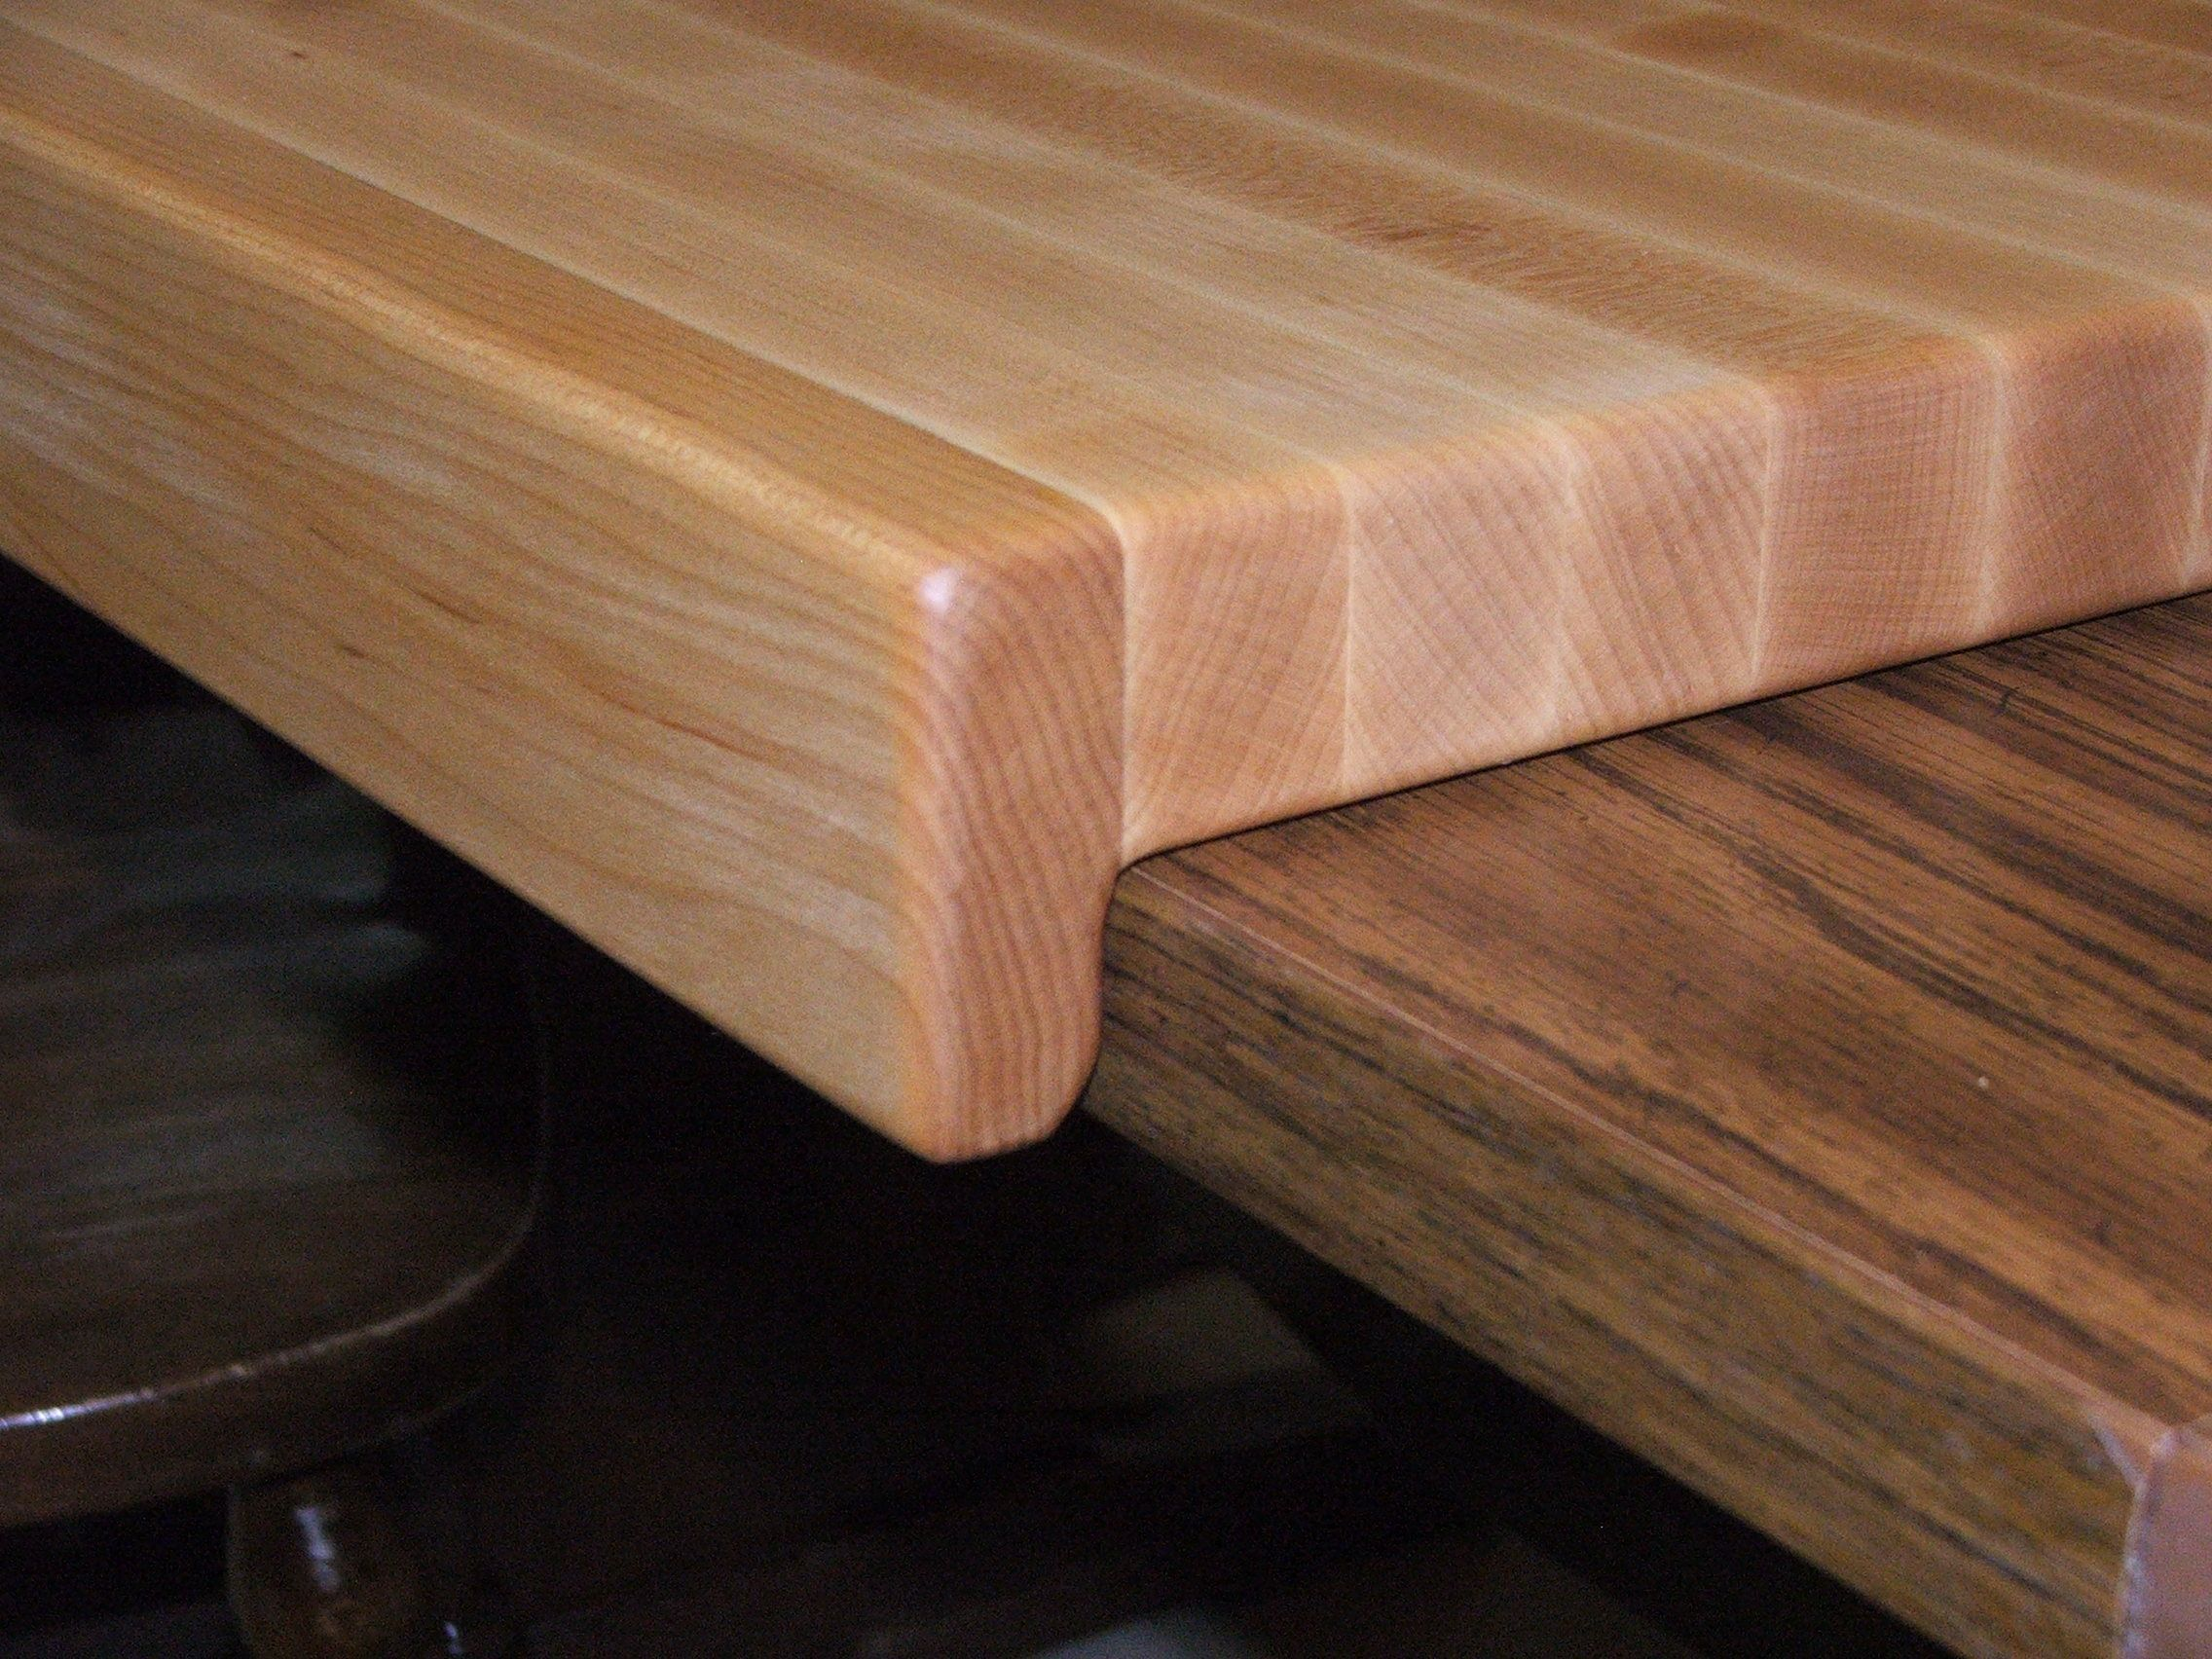 Pin On Butcher Block Cutting Boards